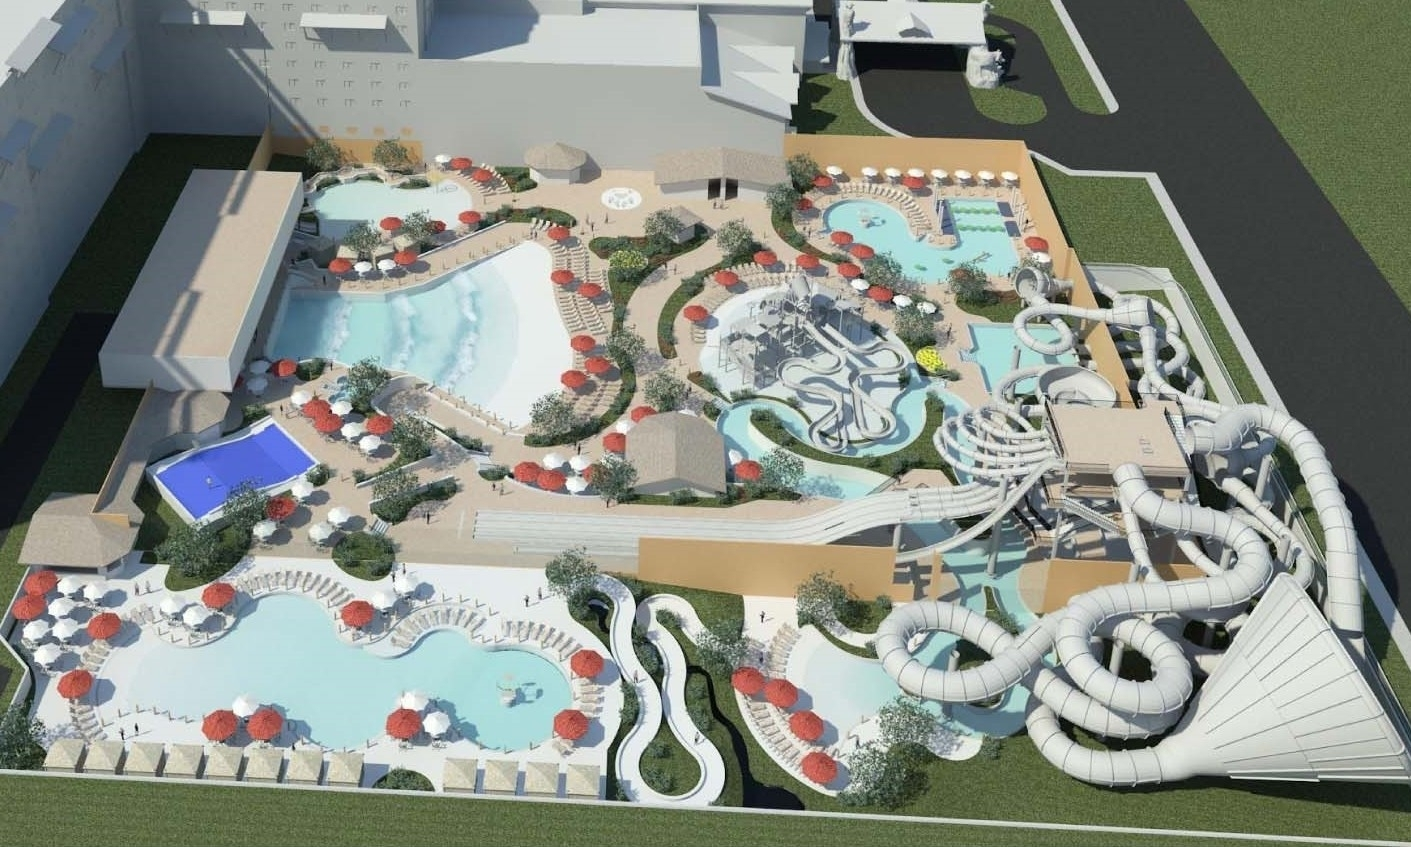 A Peek Inside The New Great Wolf Lodge California - Dad Logic with regard to Best Layout For Apartments In Garden Grove Ca Design Ideas